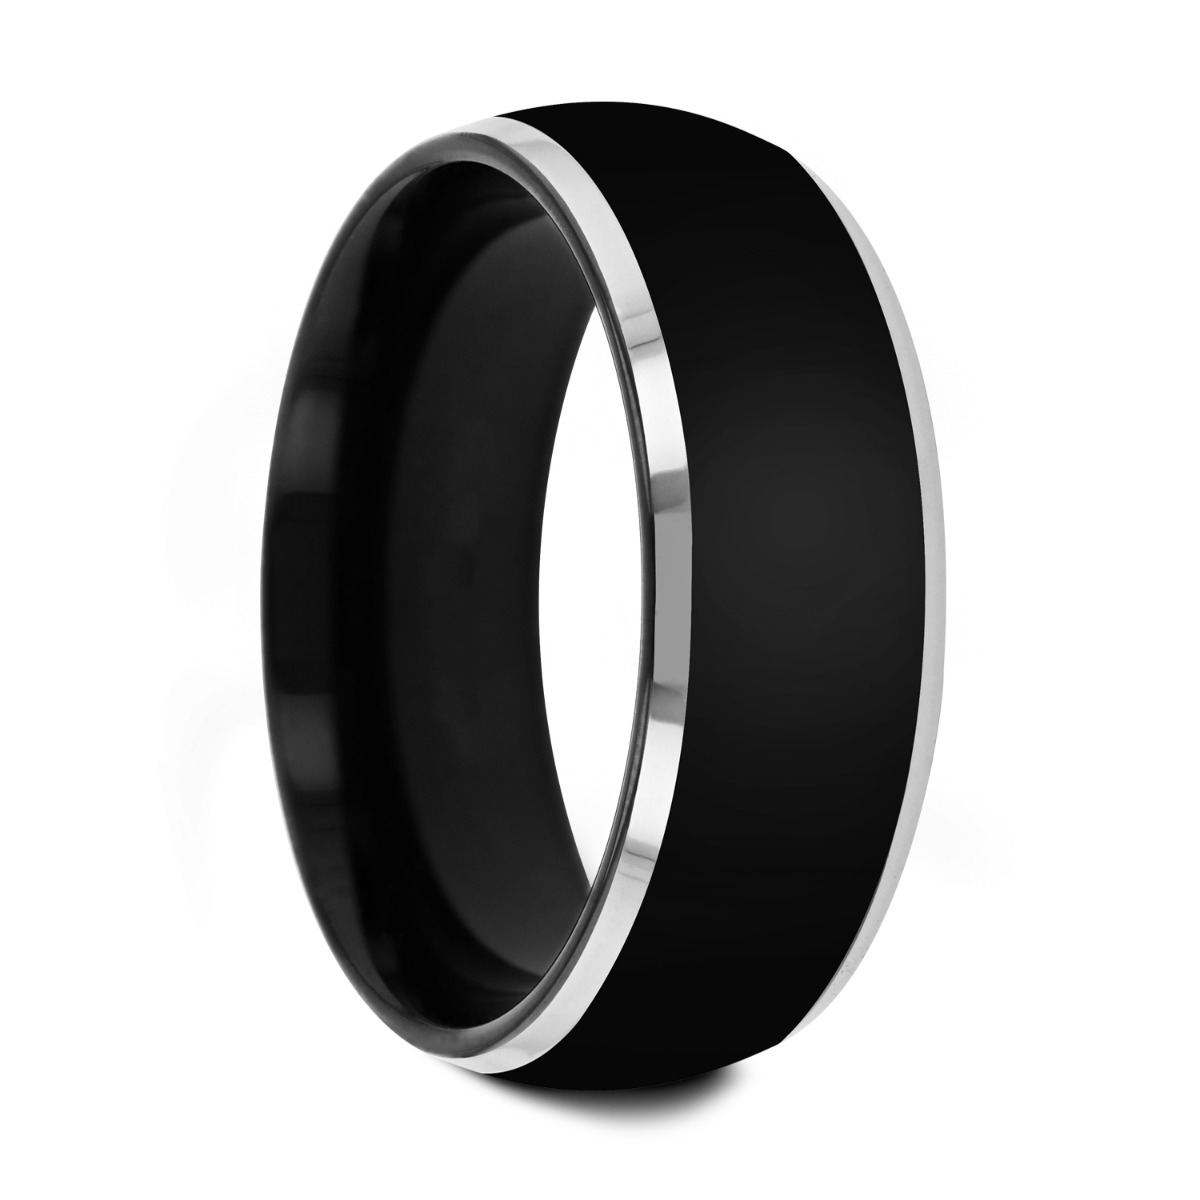 MASERATI  Black Tungsten Ring with Polished Domed Beveled Edges - 4mm - 10mm